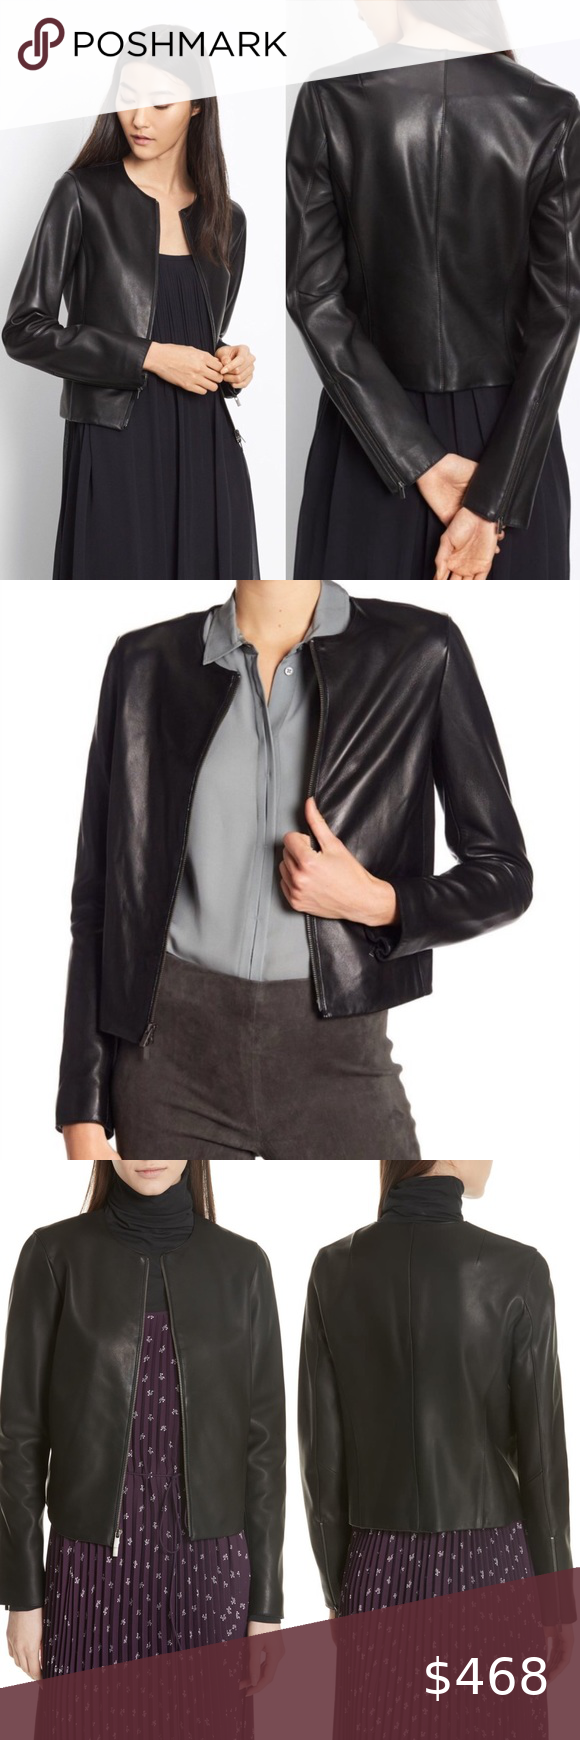 Vince Black Collarless Lamb Leather Jacket L L 12 Details Care Constructed With A Minimum Of Seams To Maximize Lamb Leather Jacket Leather Jacket Collarless [ 1740 x 580 Pixel ]